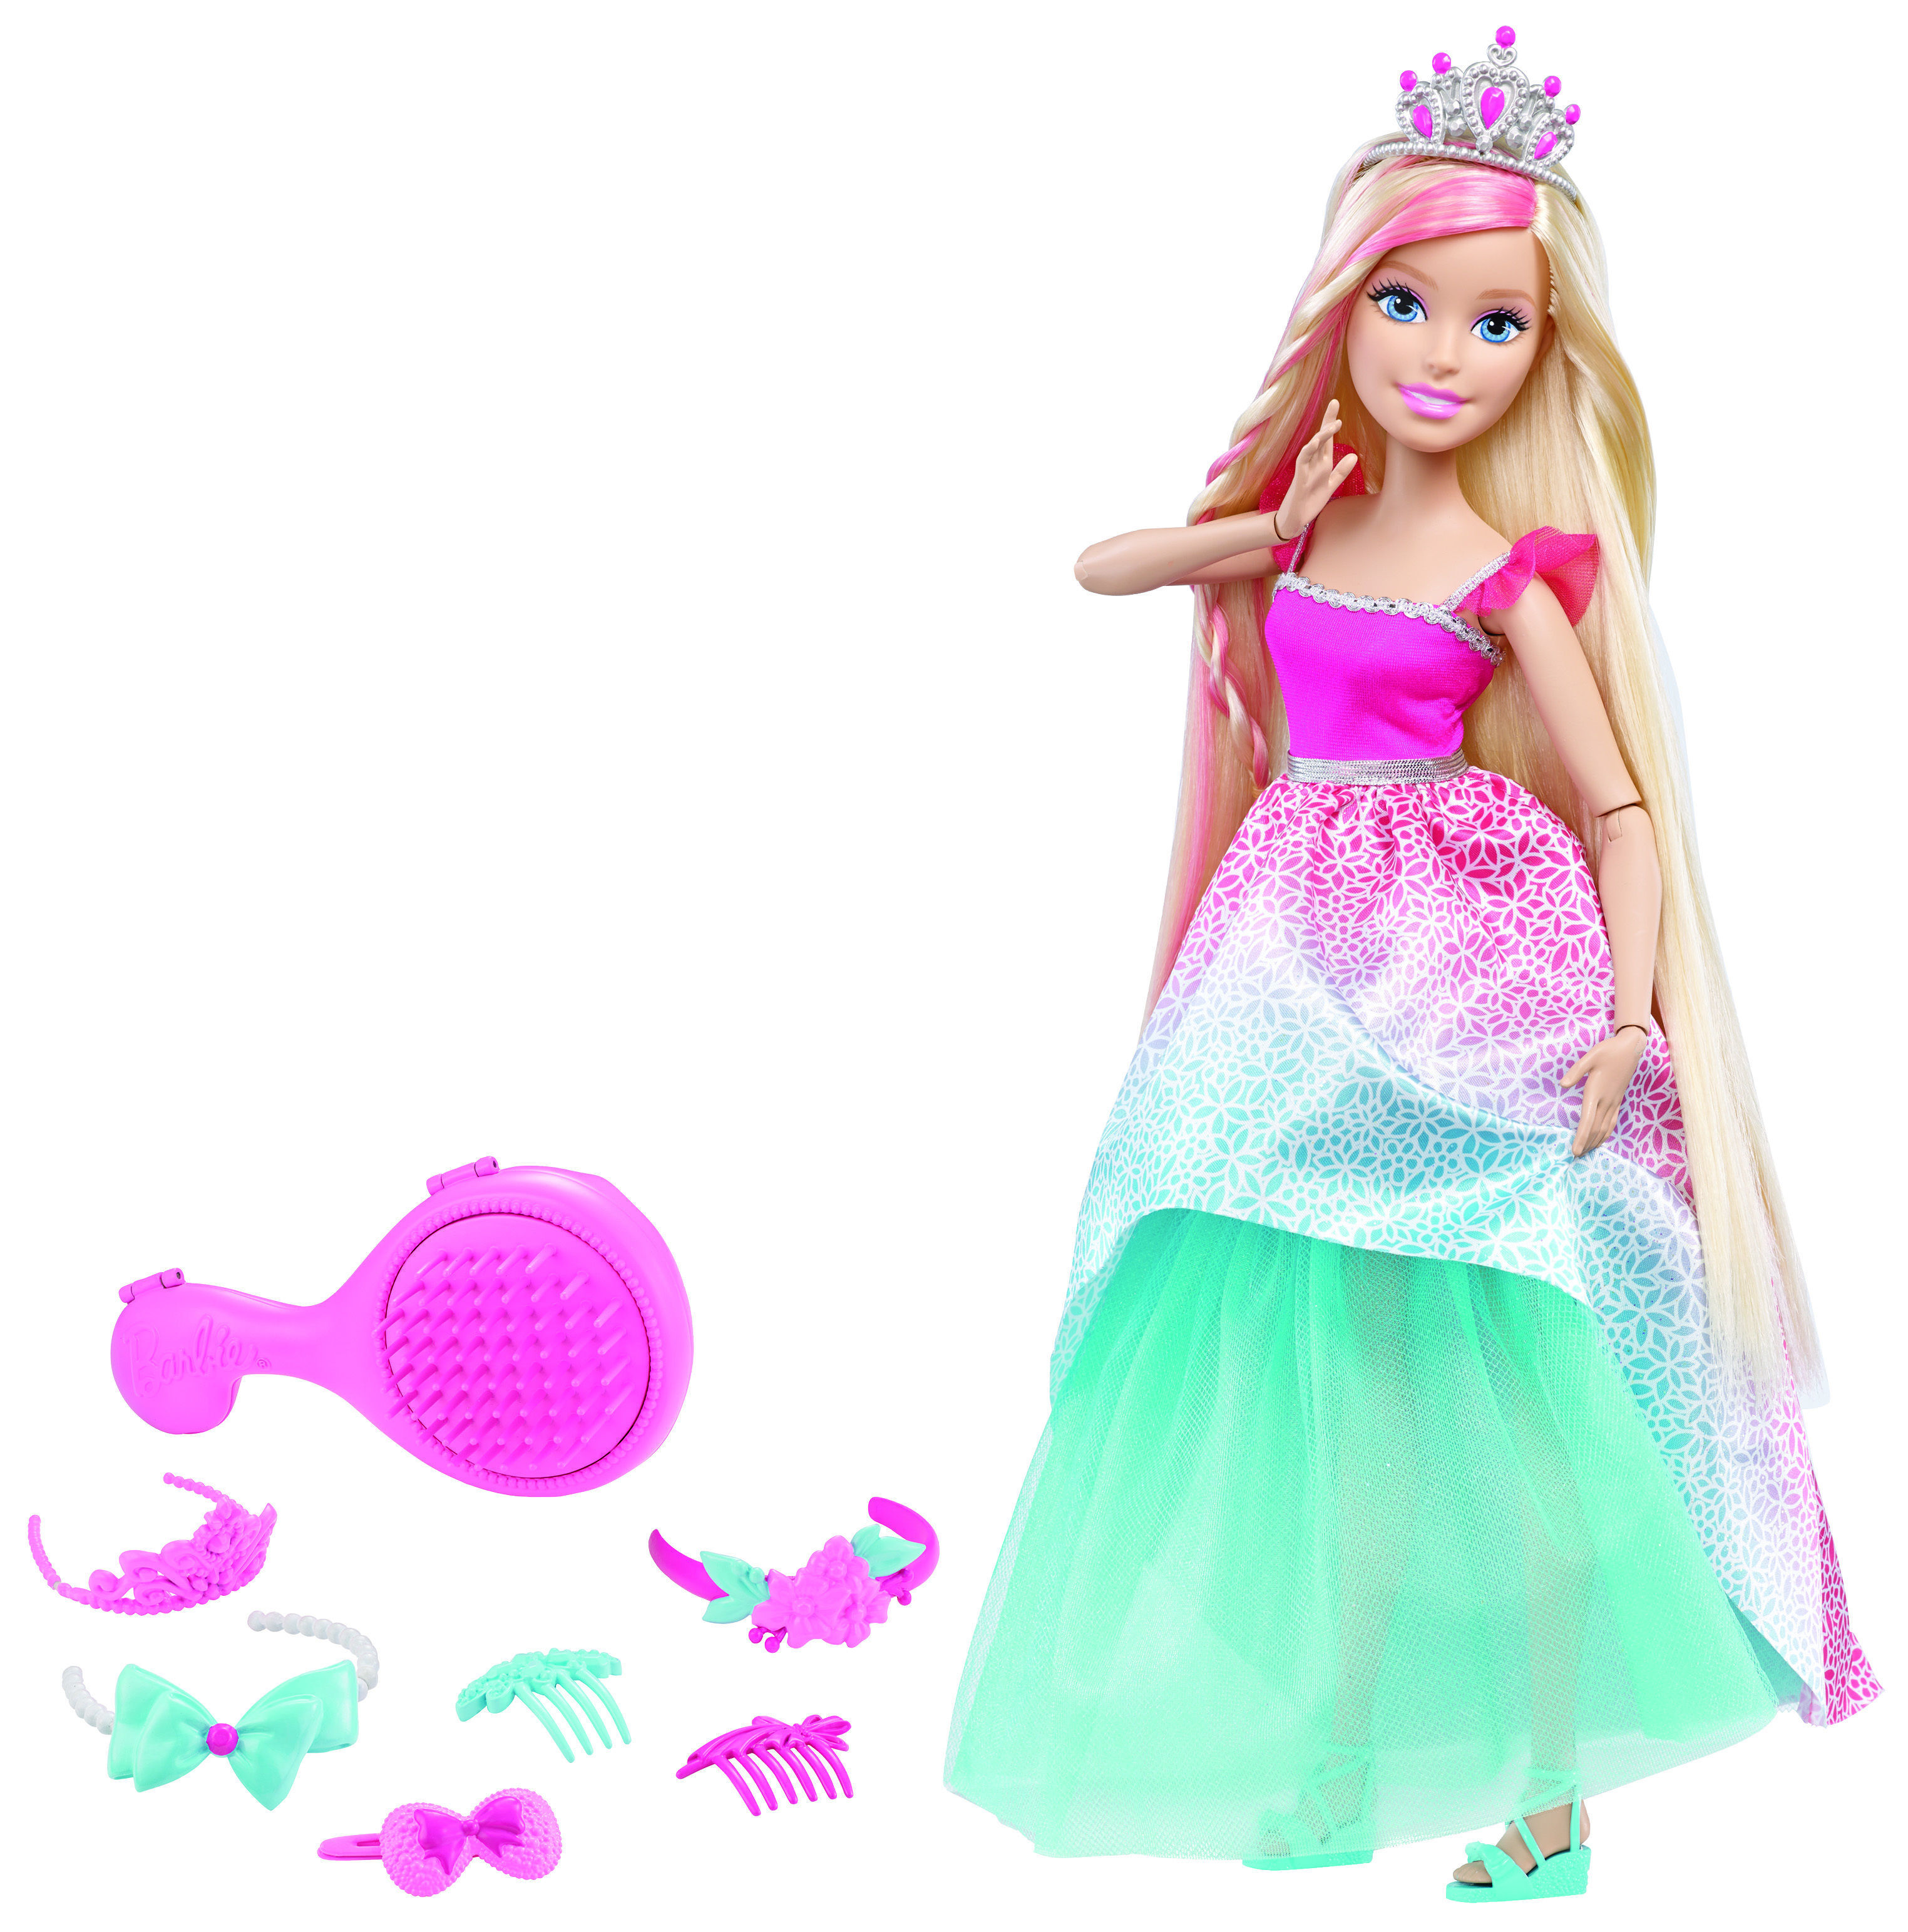 BARBIE GRANDE PRINCESSE - DKR09